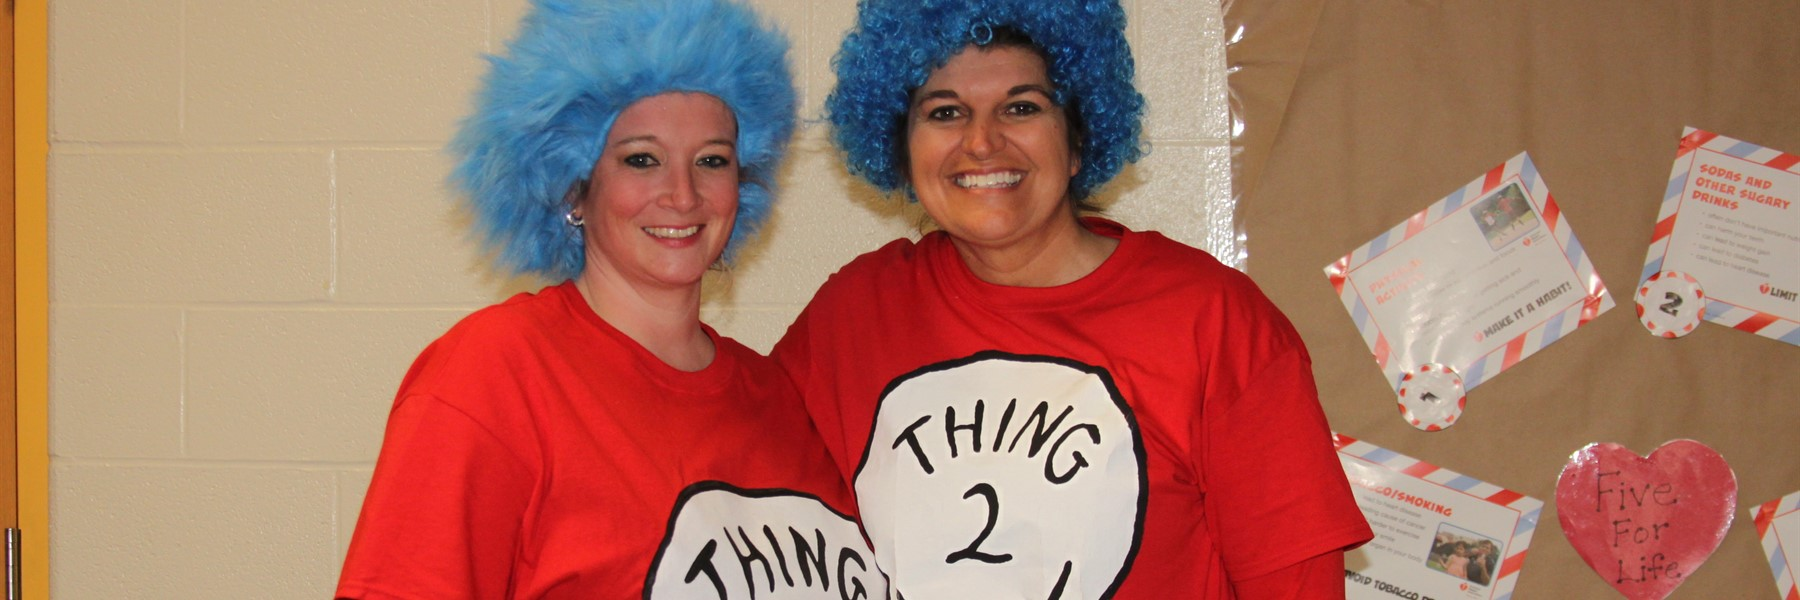 Kindergarten Teachers support Dr. Seuss